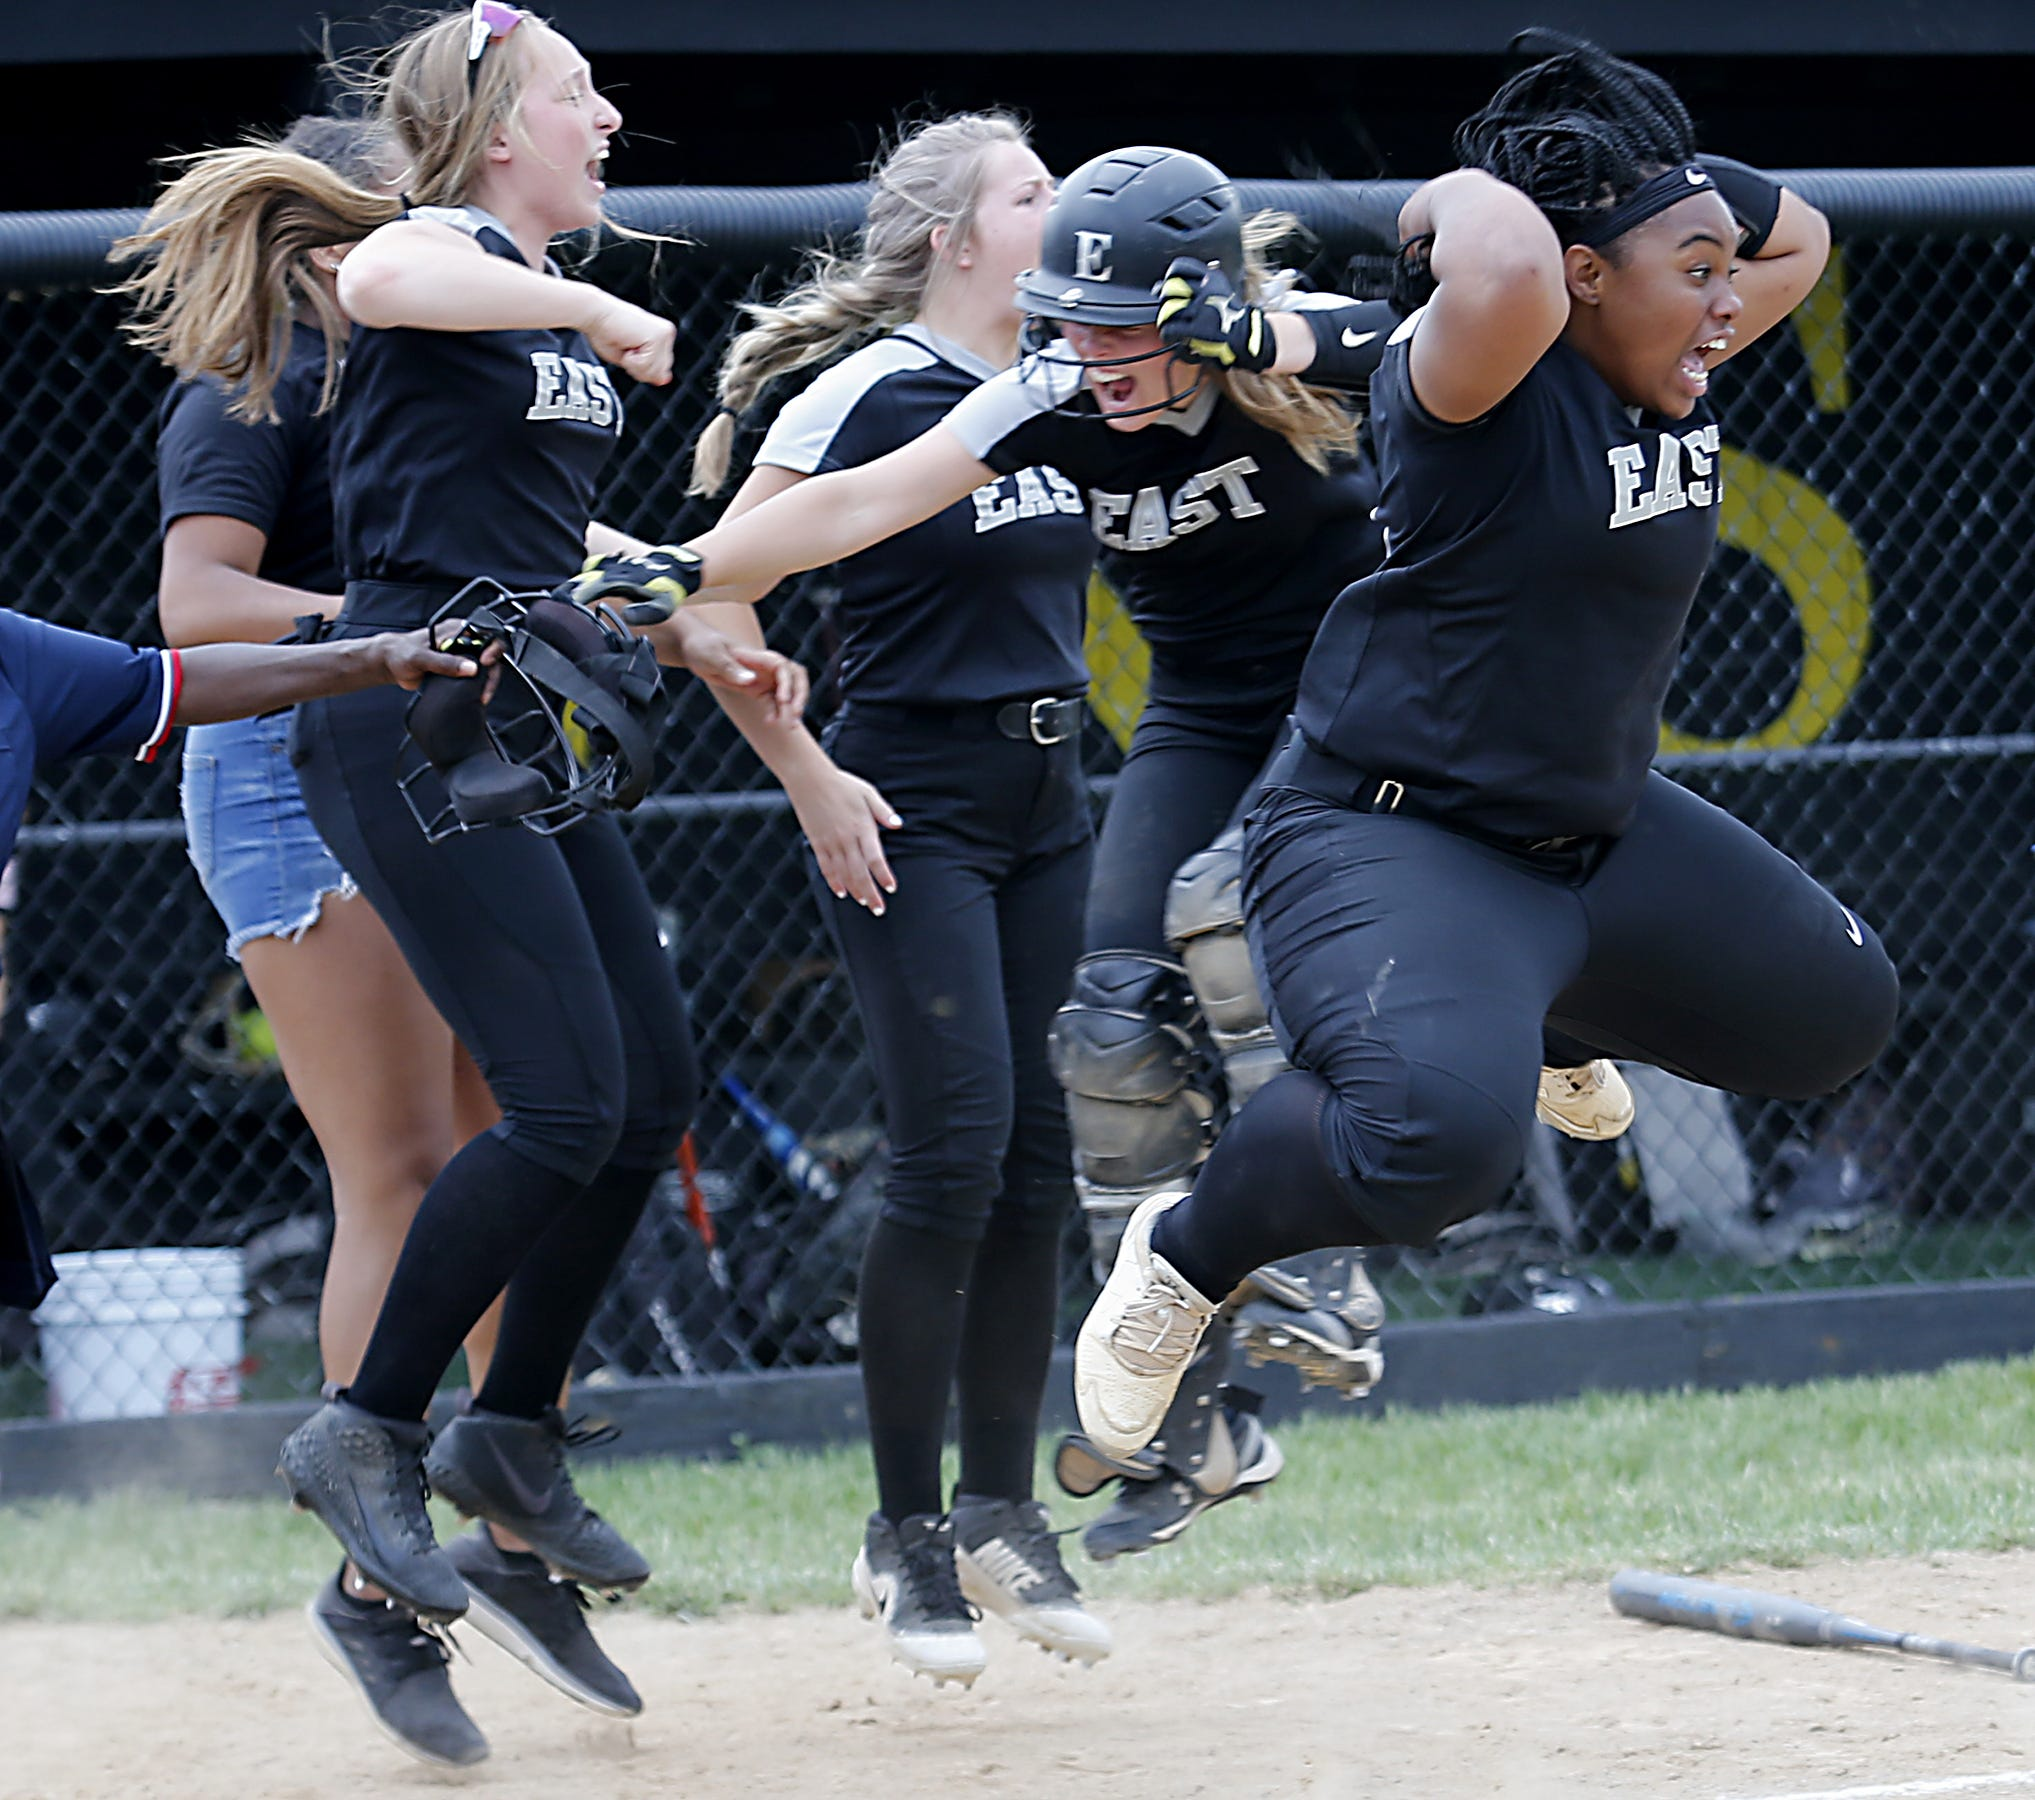 PHOTOS: Lakota East, Lakota West softball move on to DI regional finals